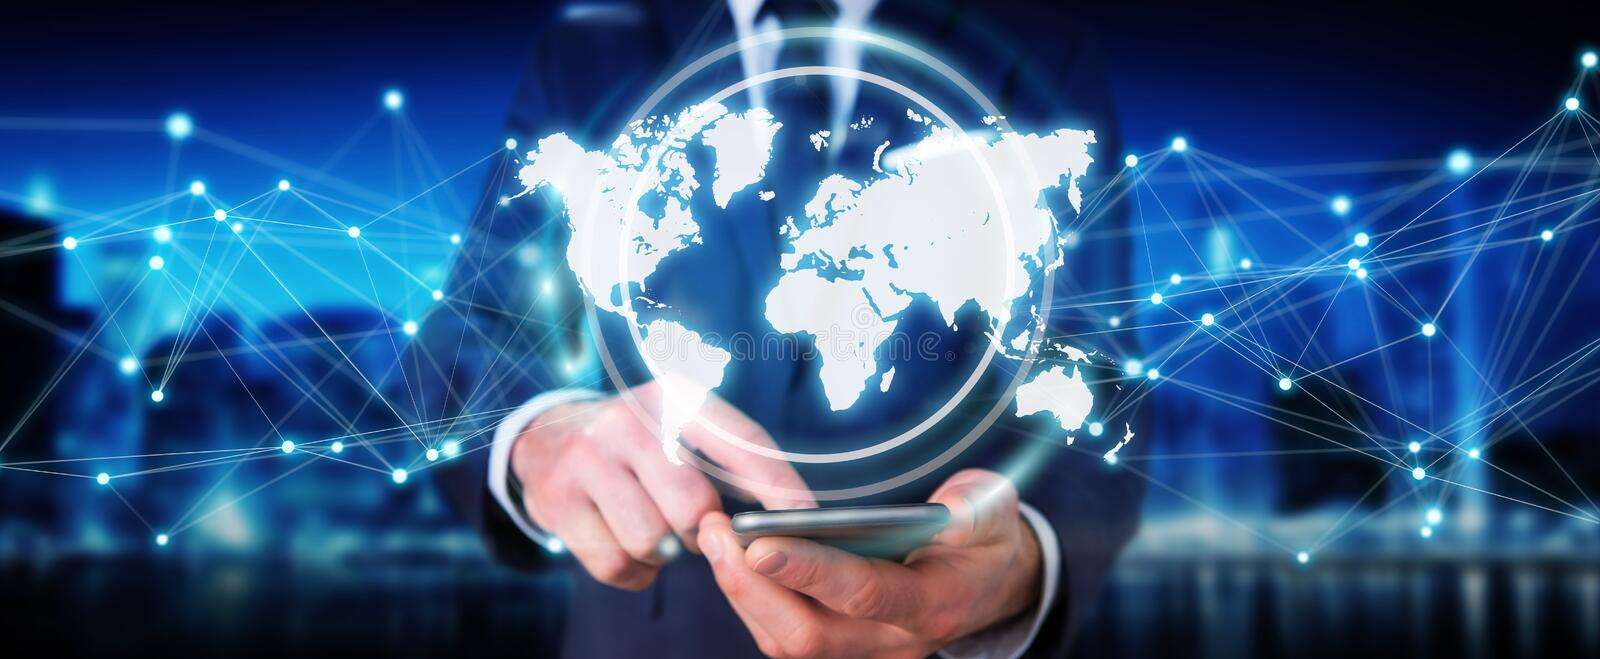 Businessman using digital world map interface 3D rendering. Businessman on blurred background using digital world map interface 3D rendering royalty free illustration